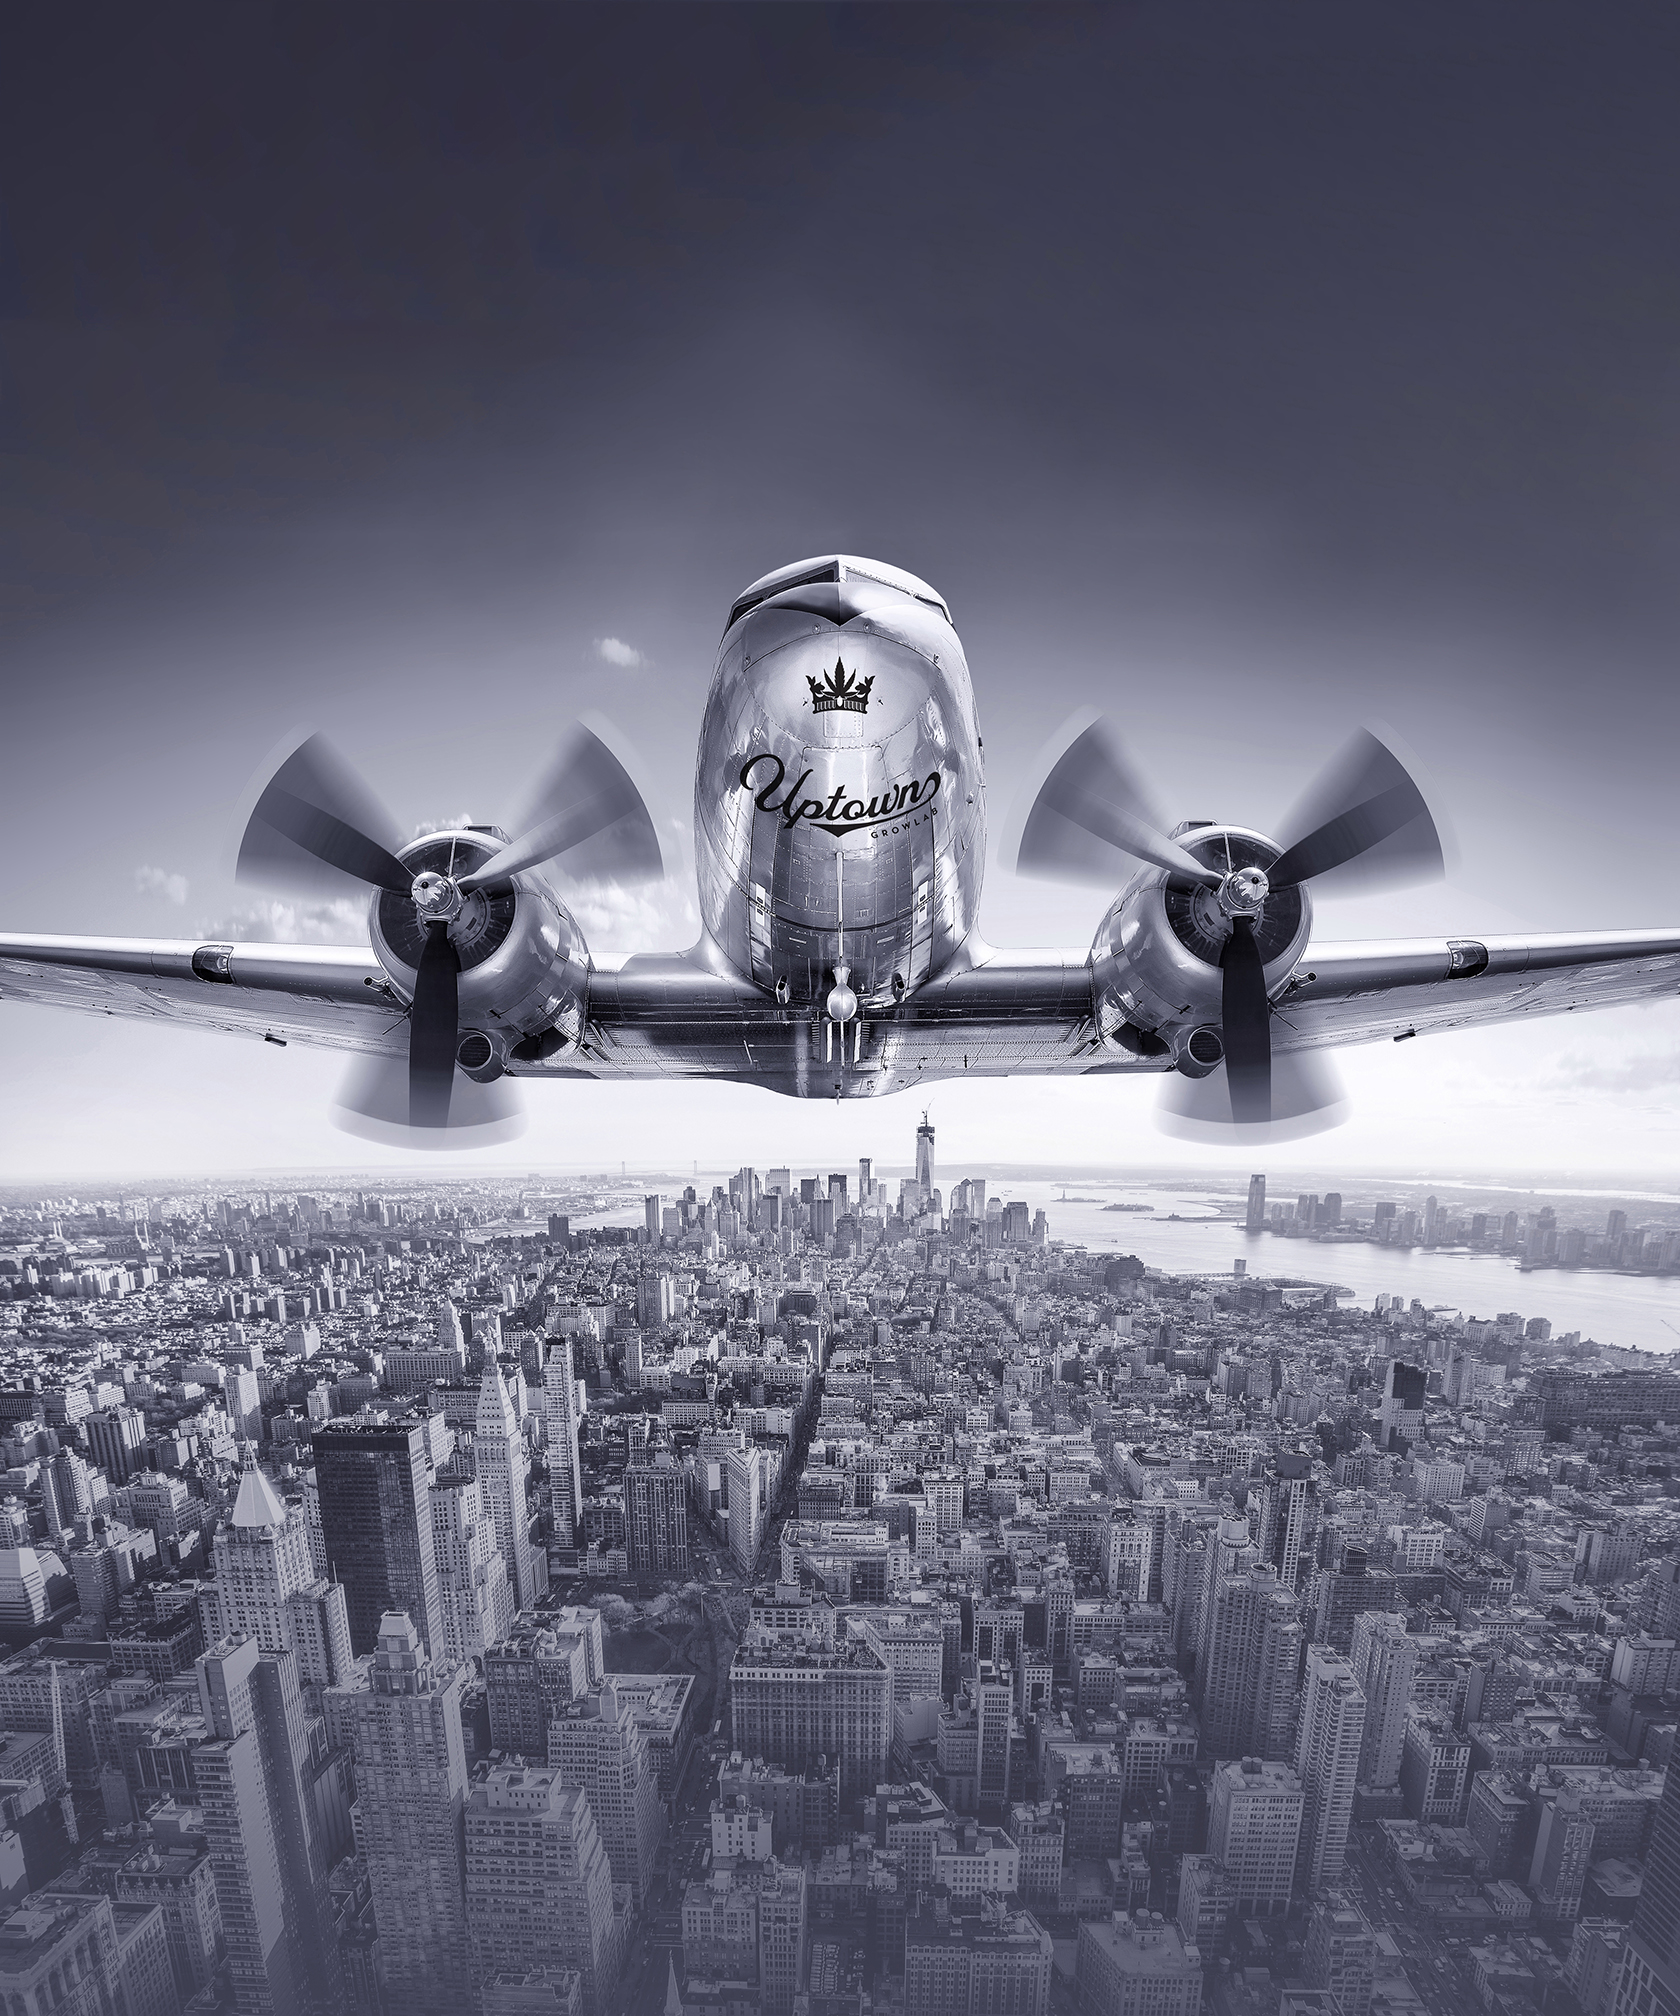 [at 40 for etsy]Uptown Growlab LIVE Vintage Airplane [at 60 x 72] [v4] and Manhattan Skyline Brand G Creative 26 SEPT 2018.jpg